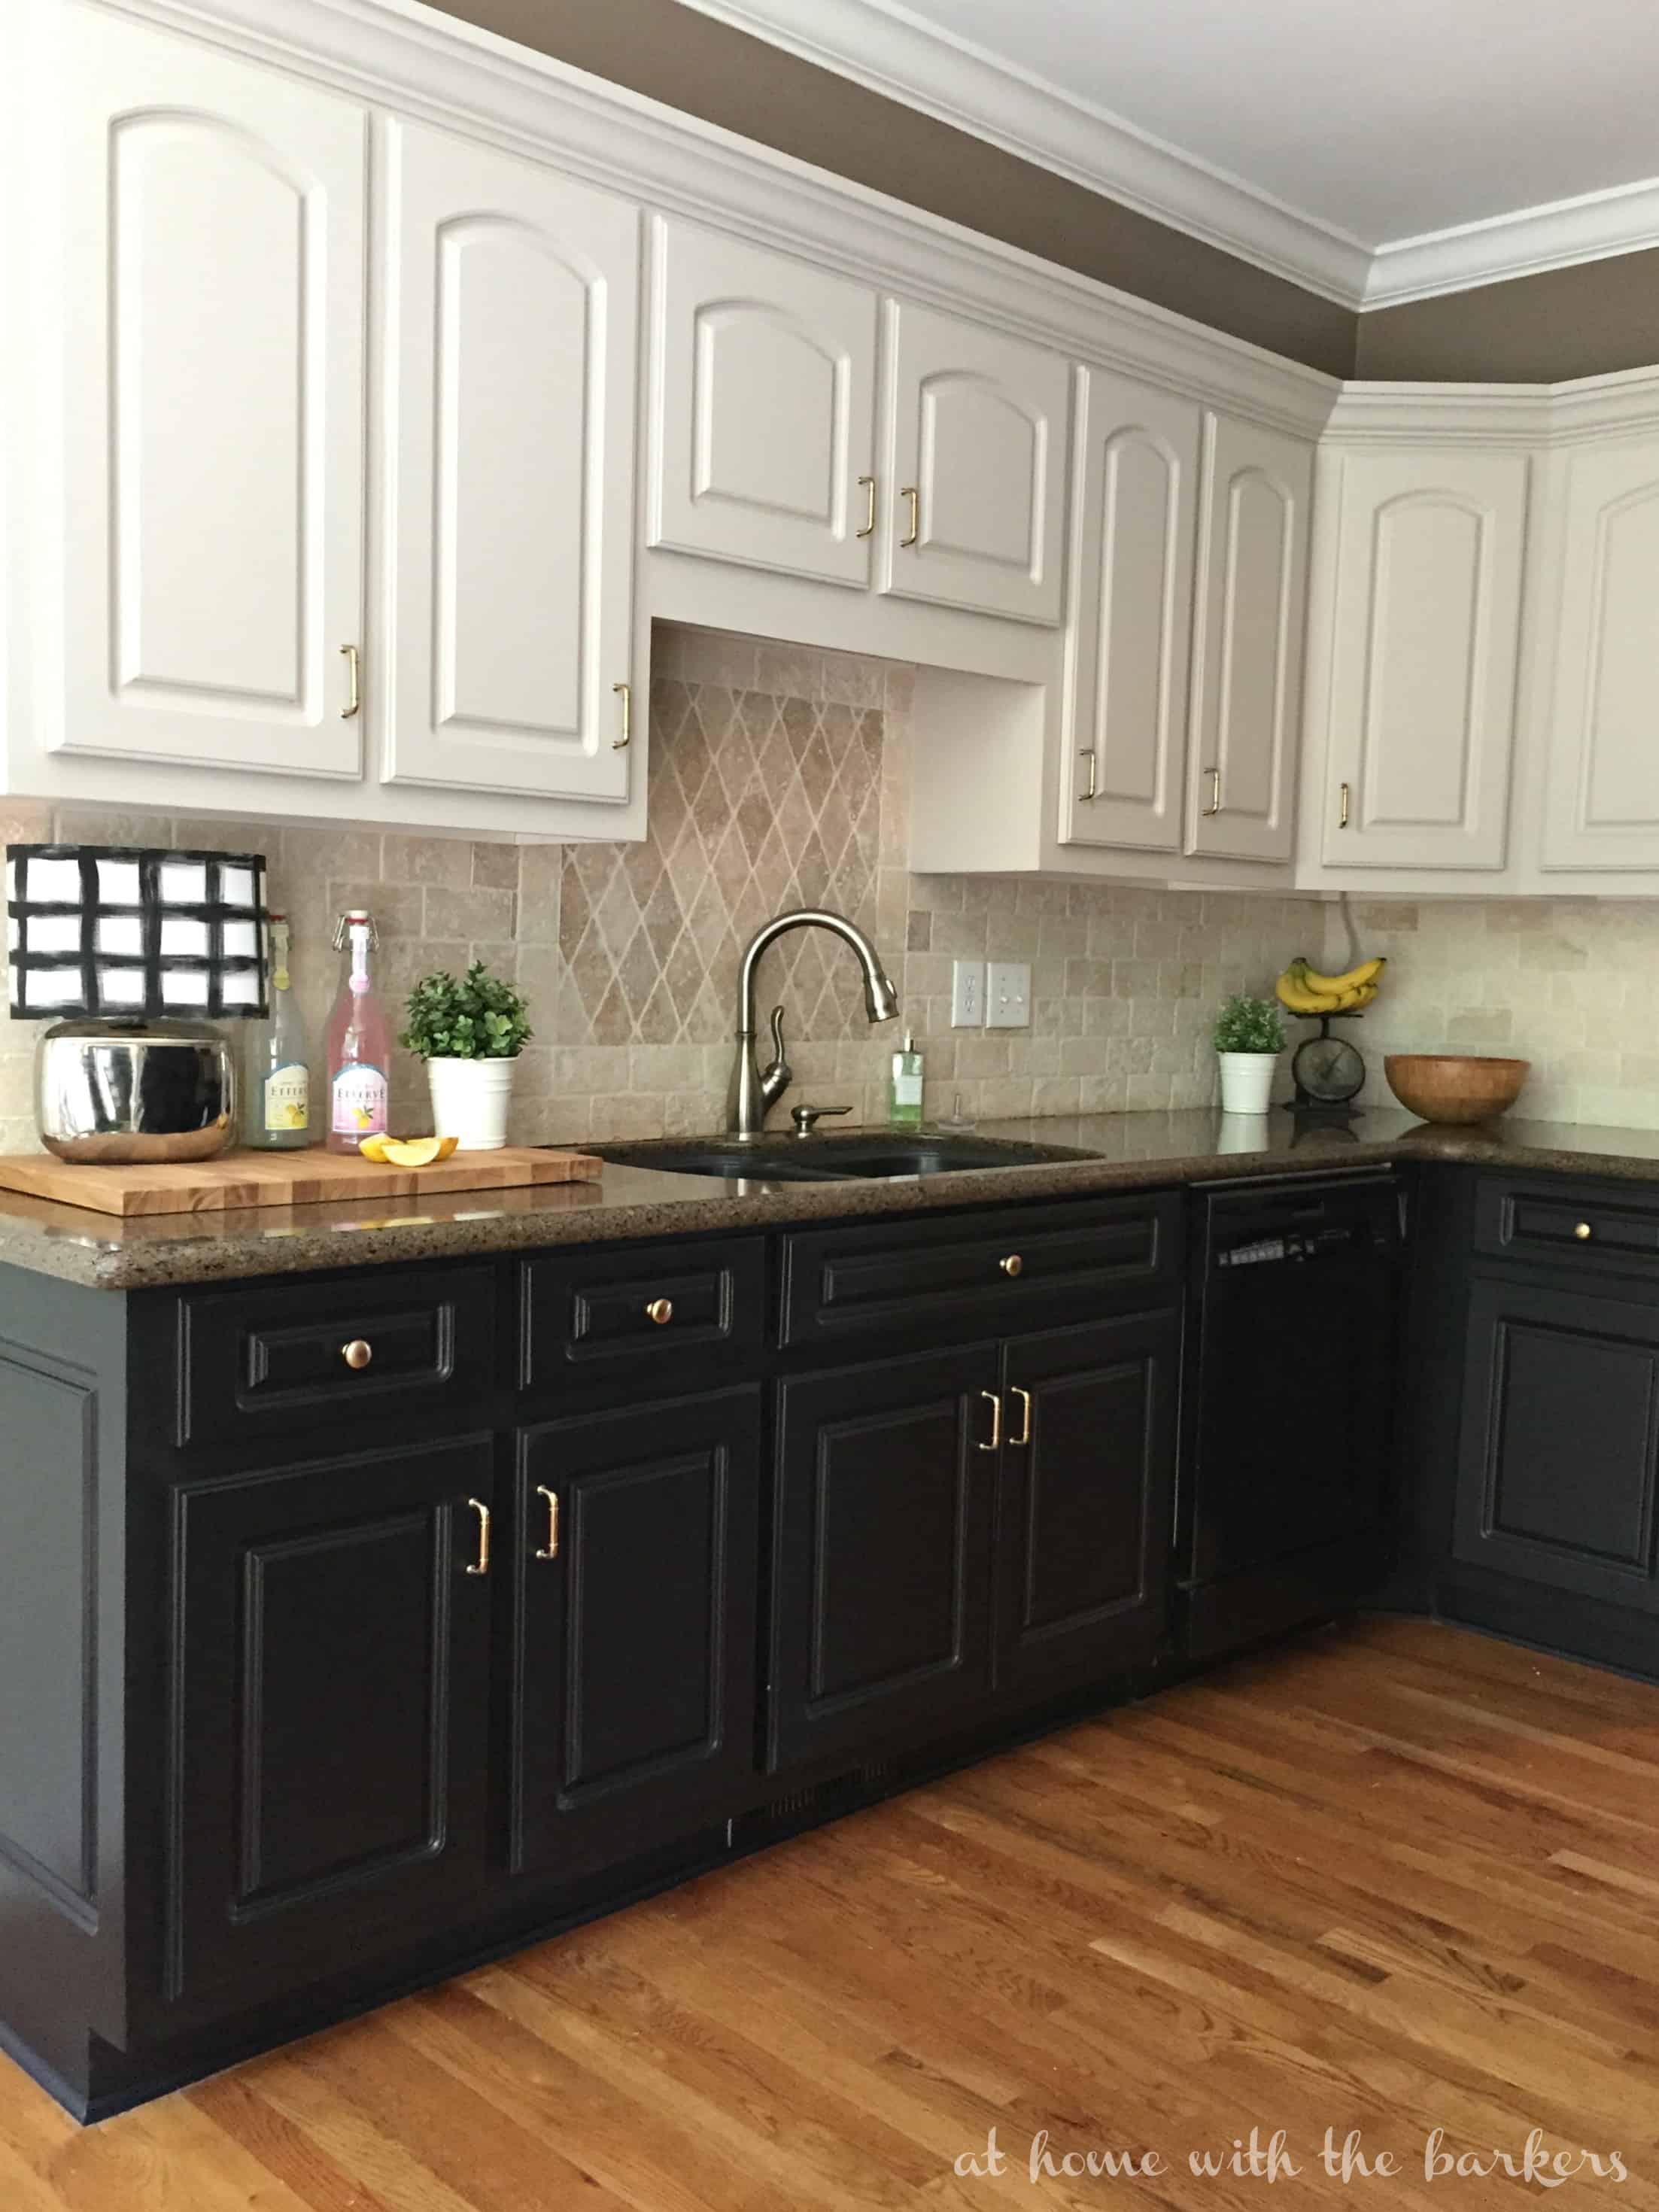 The Only Guide to One Year Later: Repainted White Kitchen Cabinets - North ...